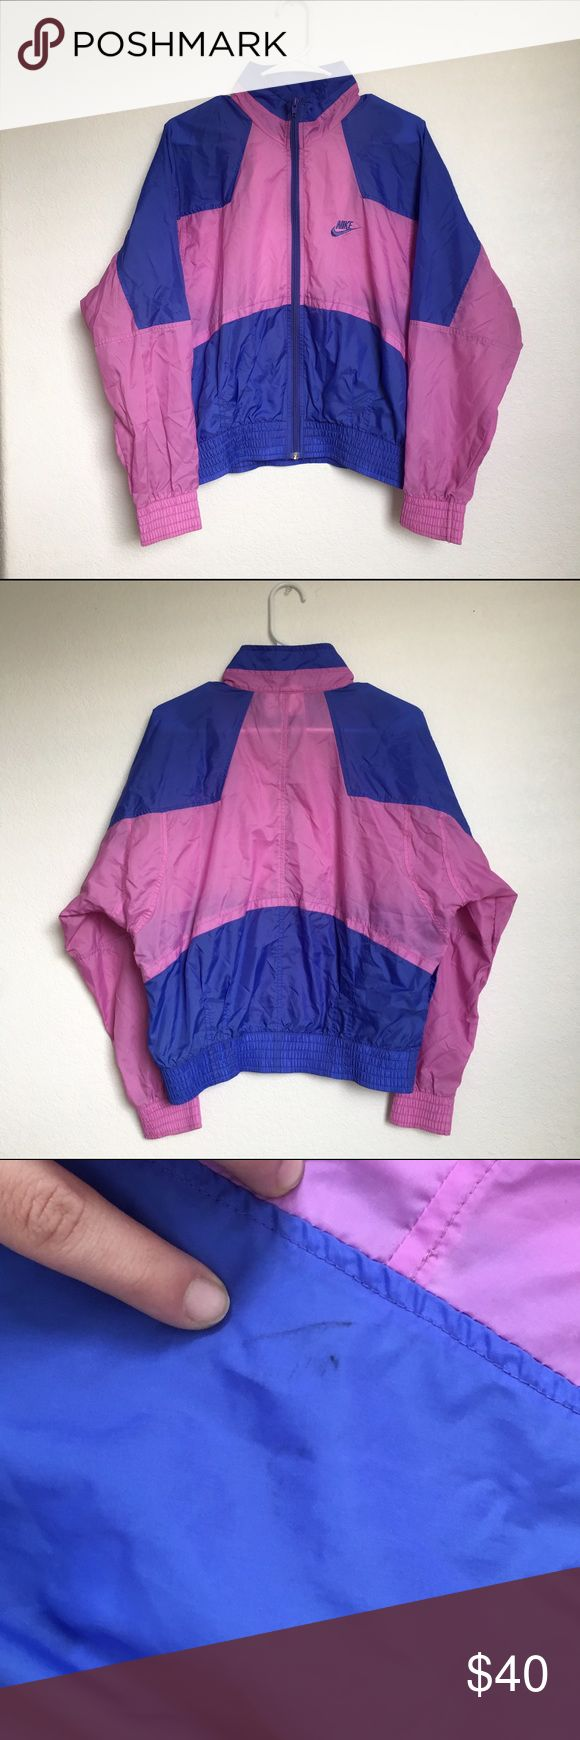 Nike jacket glow in the dark - Vintage 90s Nike Windbreaker Jacket Lightweight Windbreaker With Awesome Color Blocking Detail There Is Very